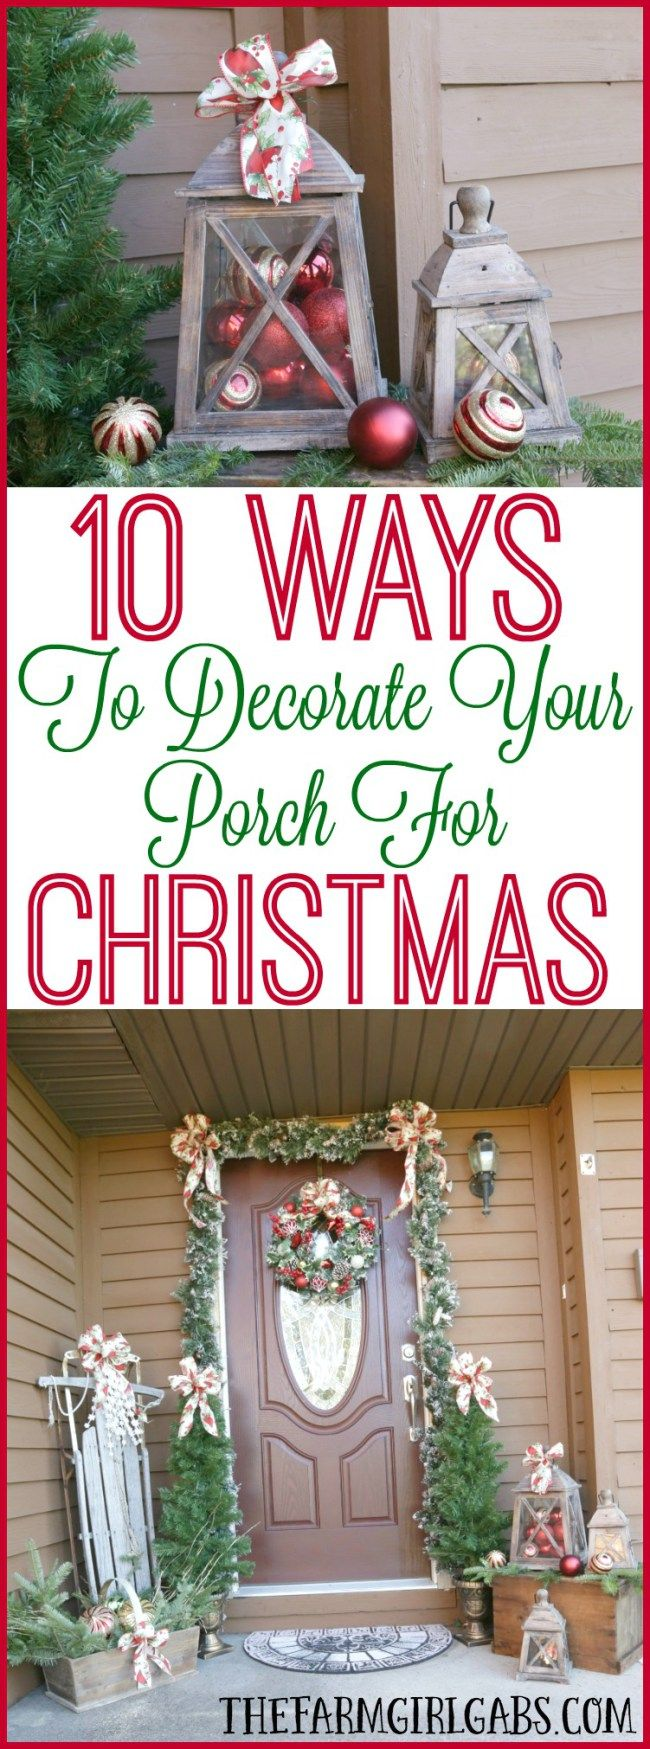 For Christmas Best 20 Wishes For Christmas Ideas On Pinterest